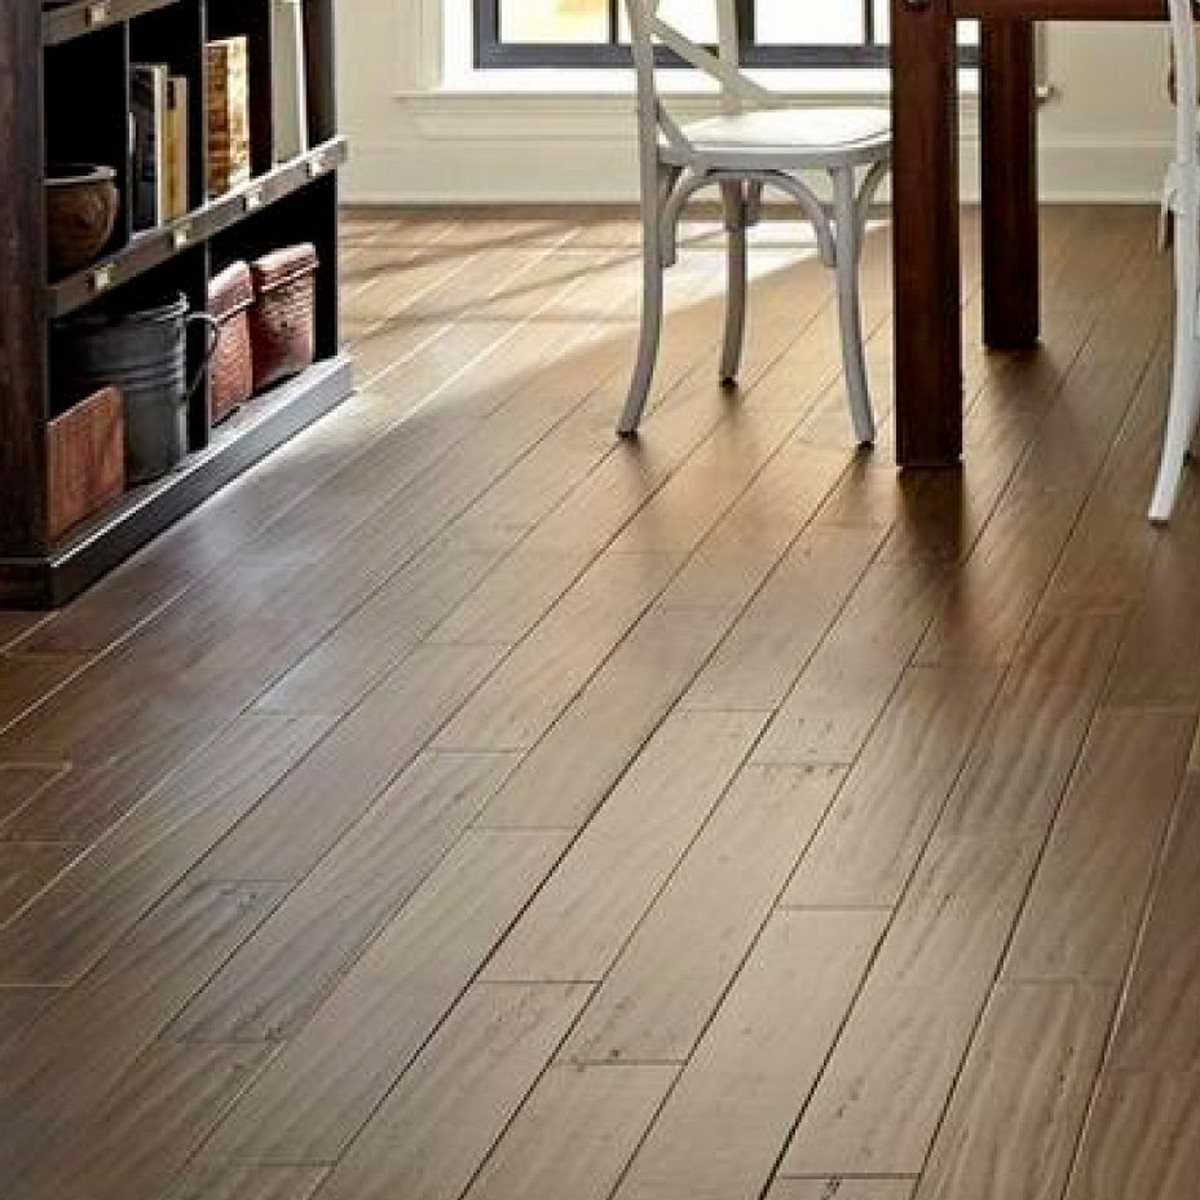 Selecting the best Kind of Wood Floors